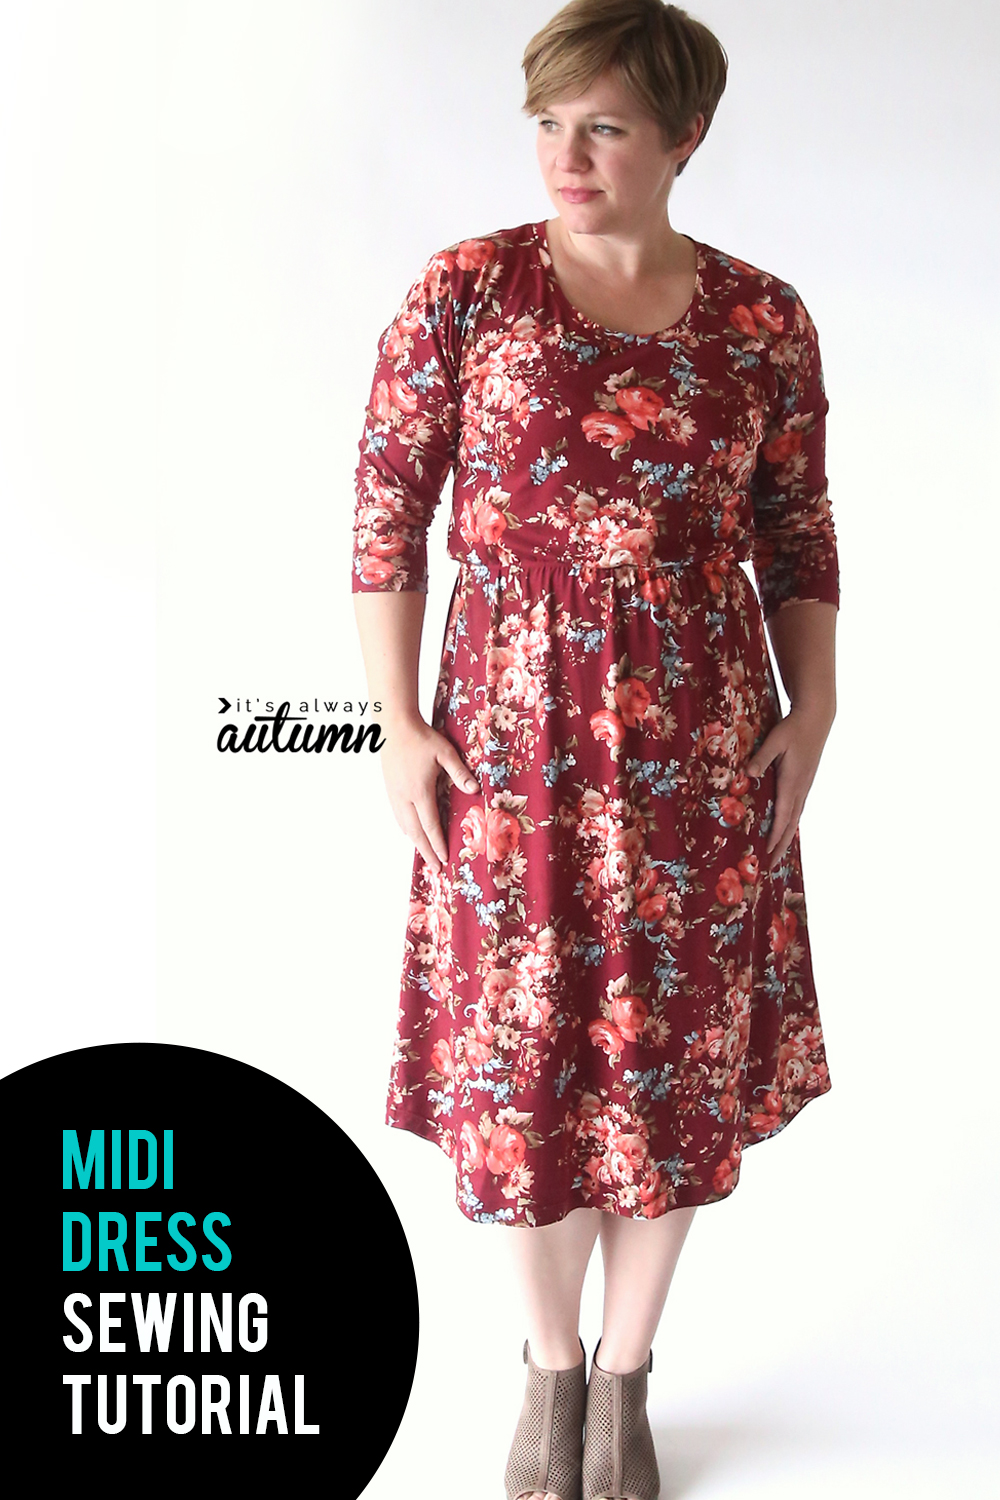 Learn how to make a cute midi dress using a free t-shirt pattern. Midi dress sewing tutorial.